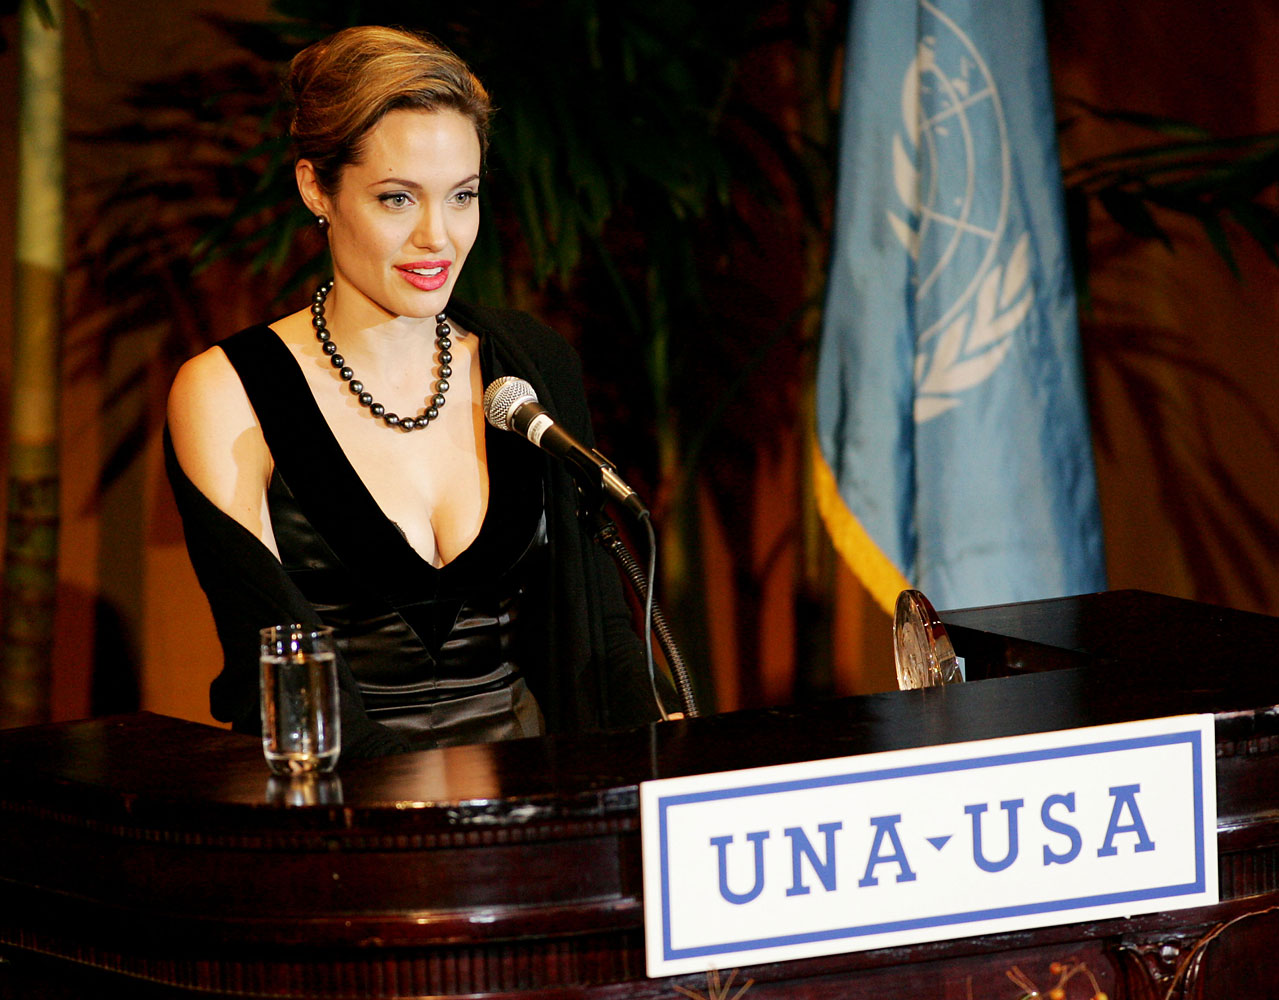 Angelina Jolie accepts the Global Humanitarian Award at the United Nations Association of the United States of America annual gala dinner at the Waldorf Astoria Hotel Oct. 11, 2005 in New York.